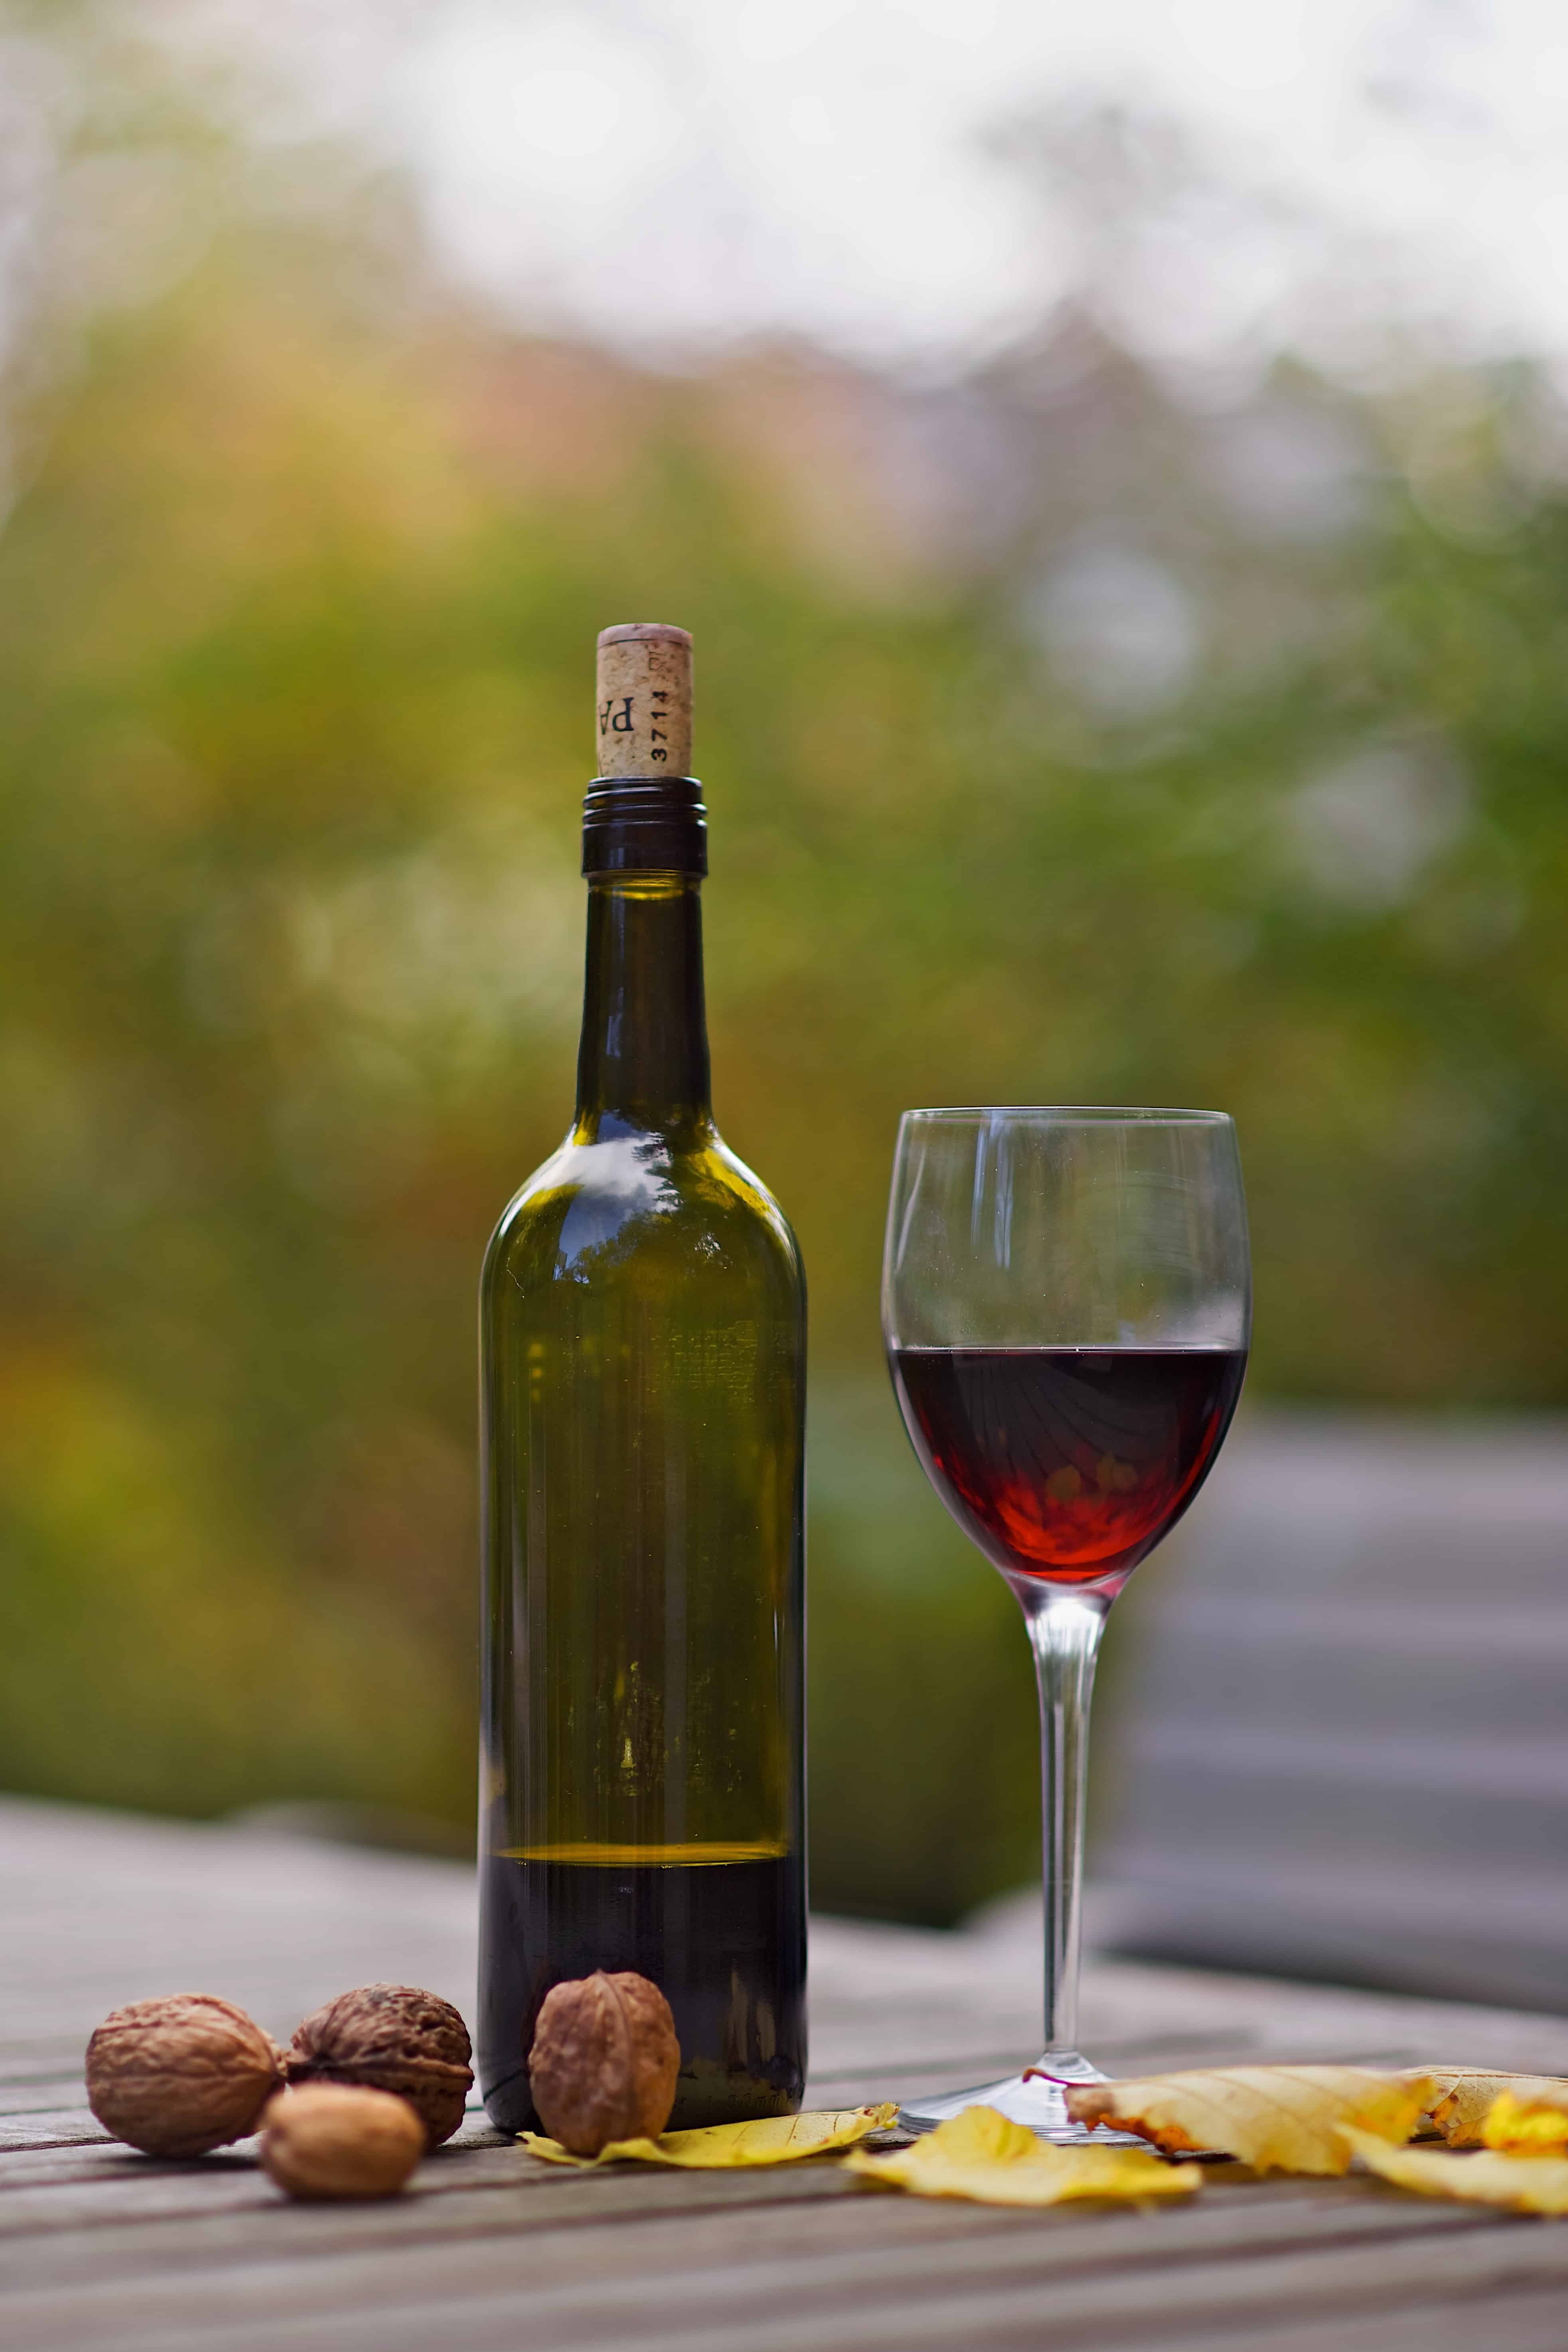 , New Sustainable Wines to Give as a Gift to Your Eco-Friendly Friends